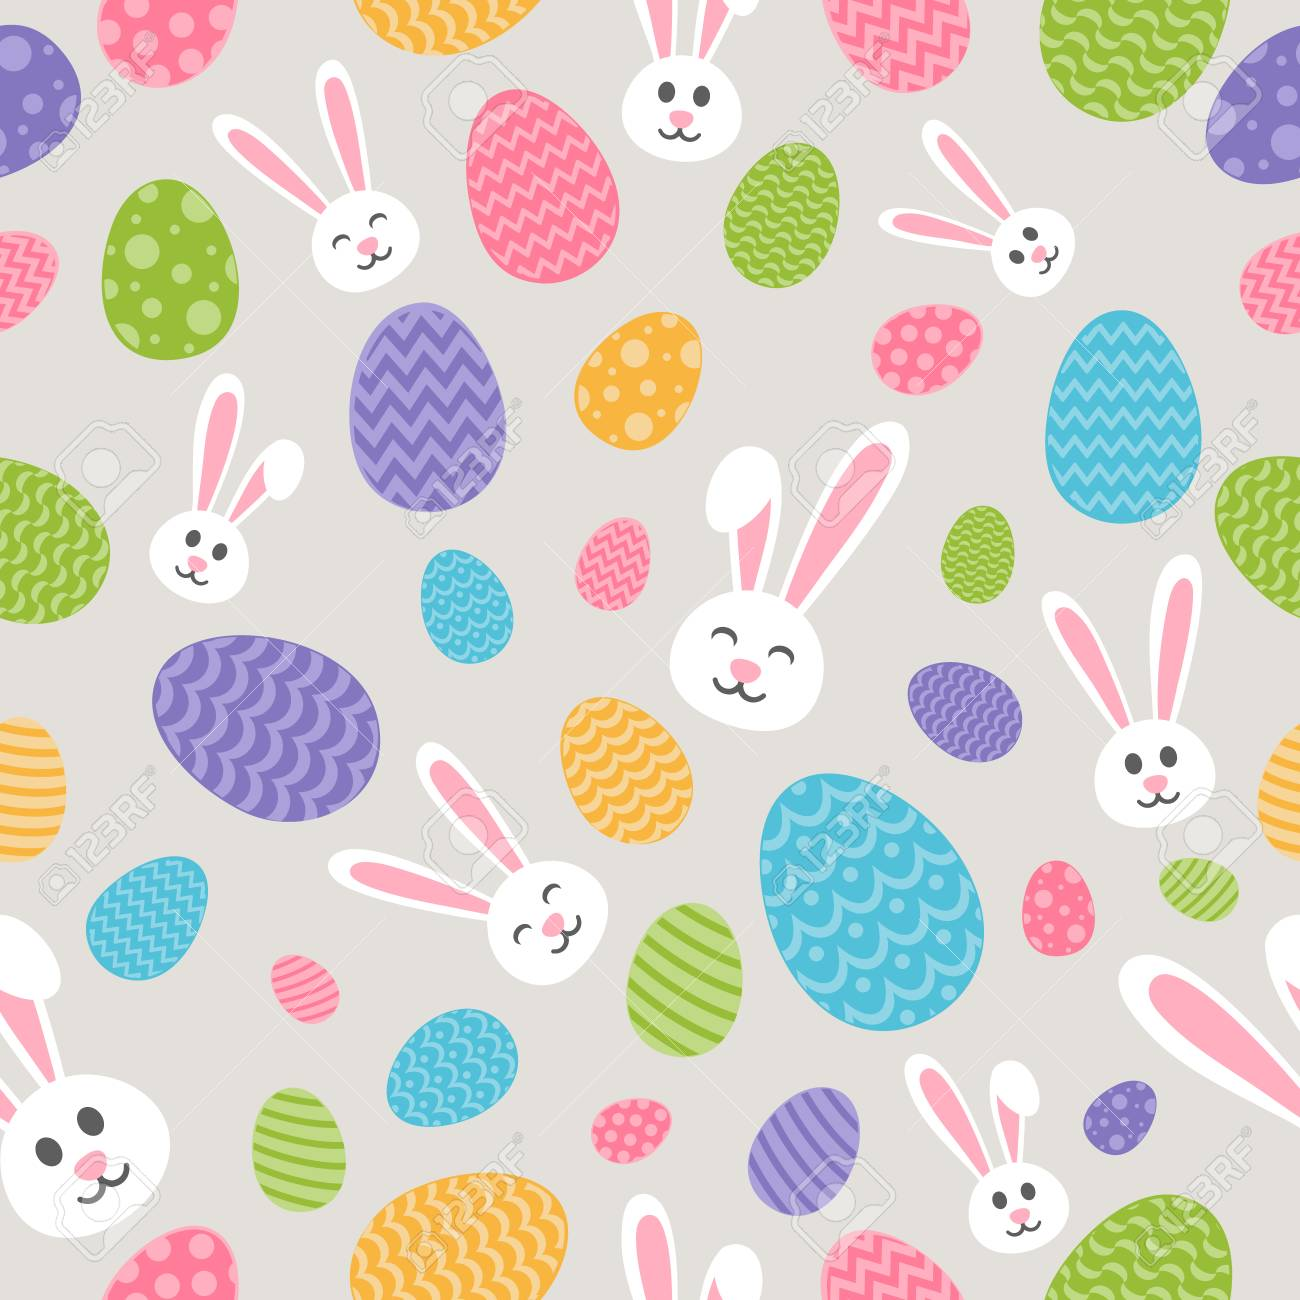 Concept Of Easter Wallpaper With Bunnies And Eggs Seamless 1300x1300